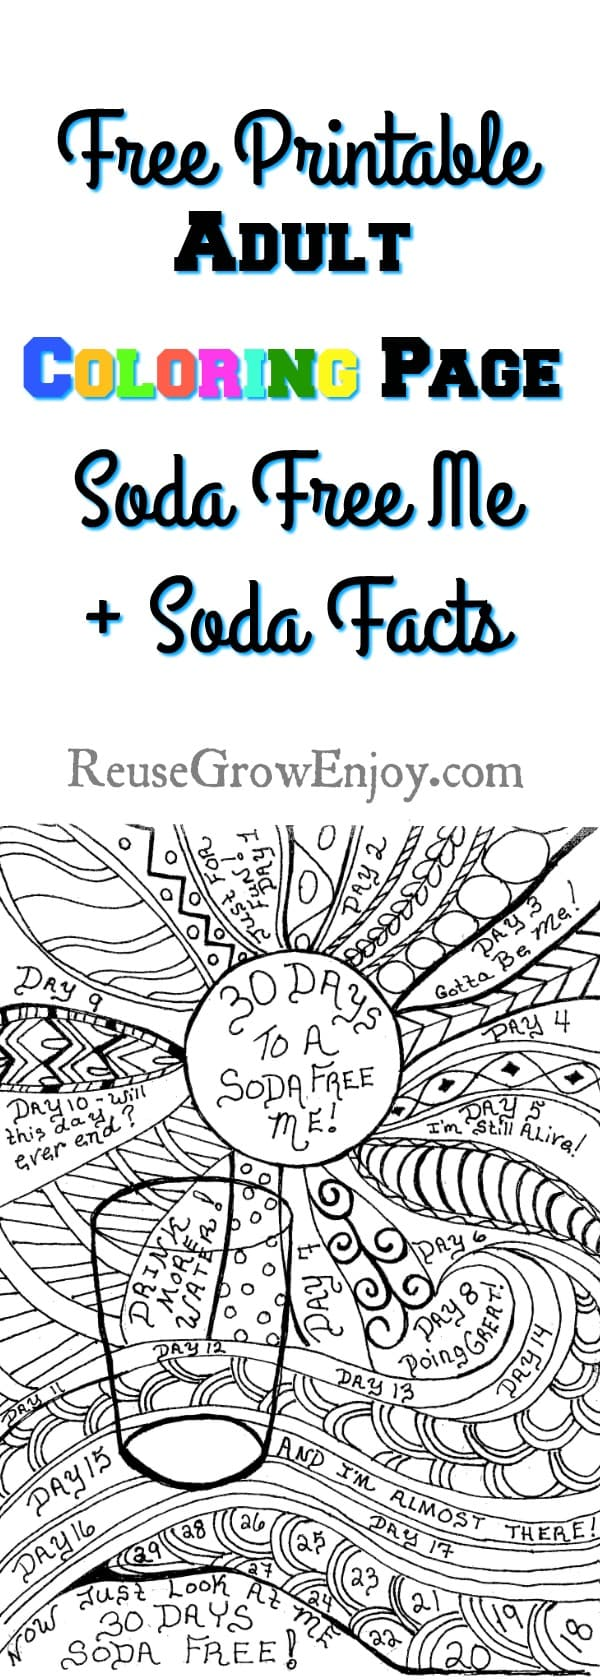 Are you learning about soda facts and trying to give them up? Here is a way to make it fun. You can grab this free adult coloring page on 30 days to a soda free me!